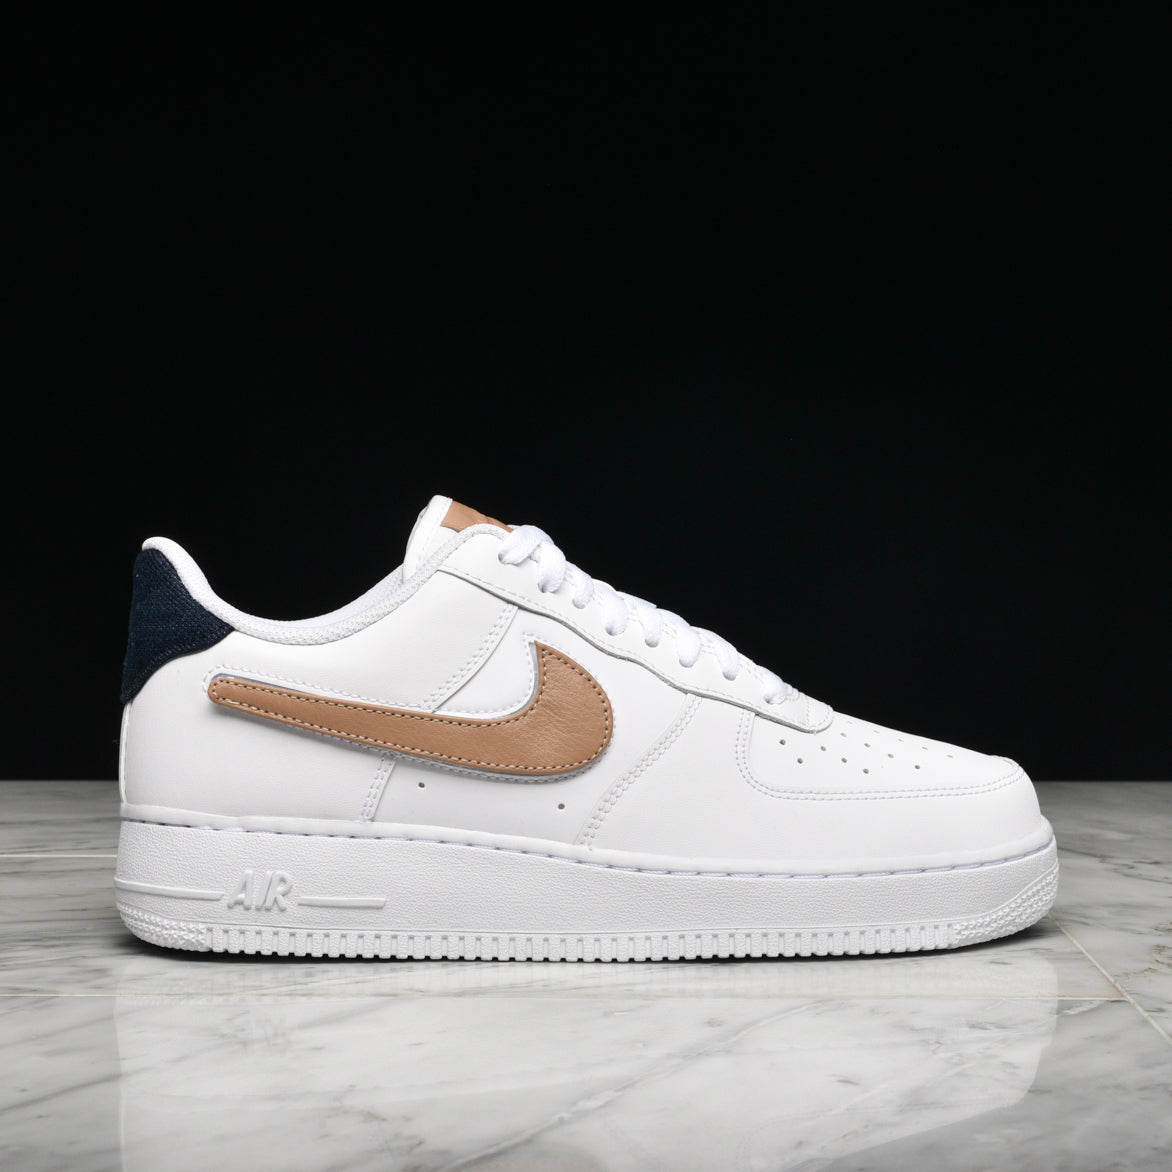 2air force 1 velcro swoosh